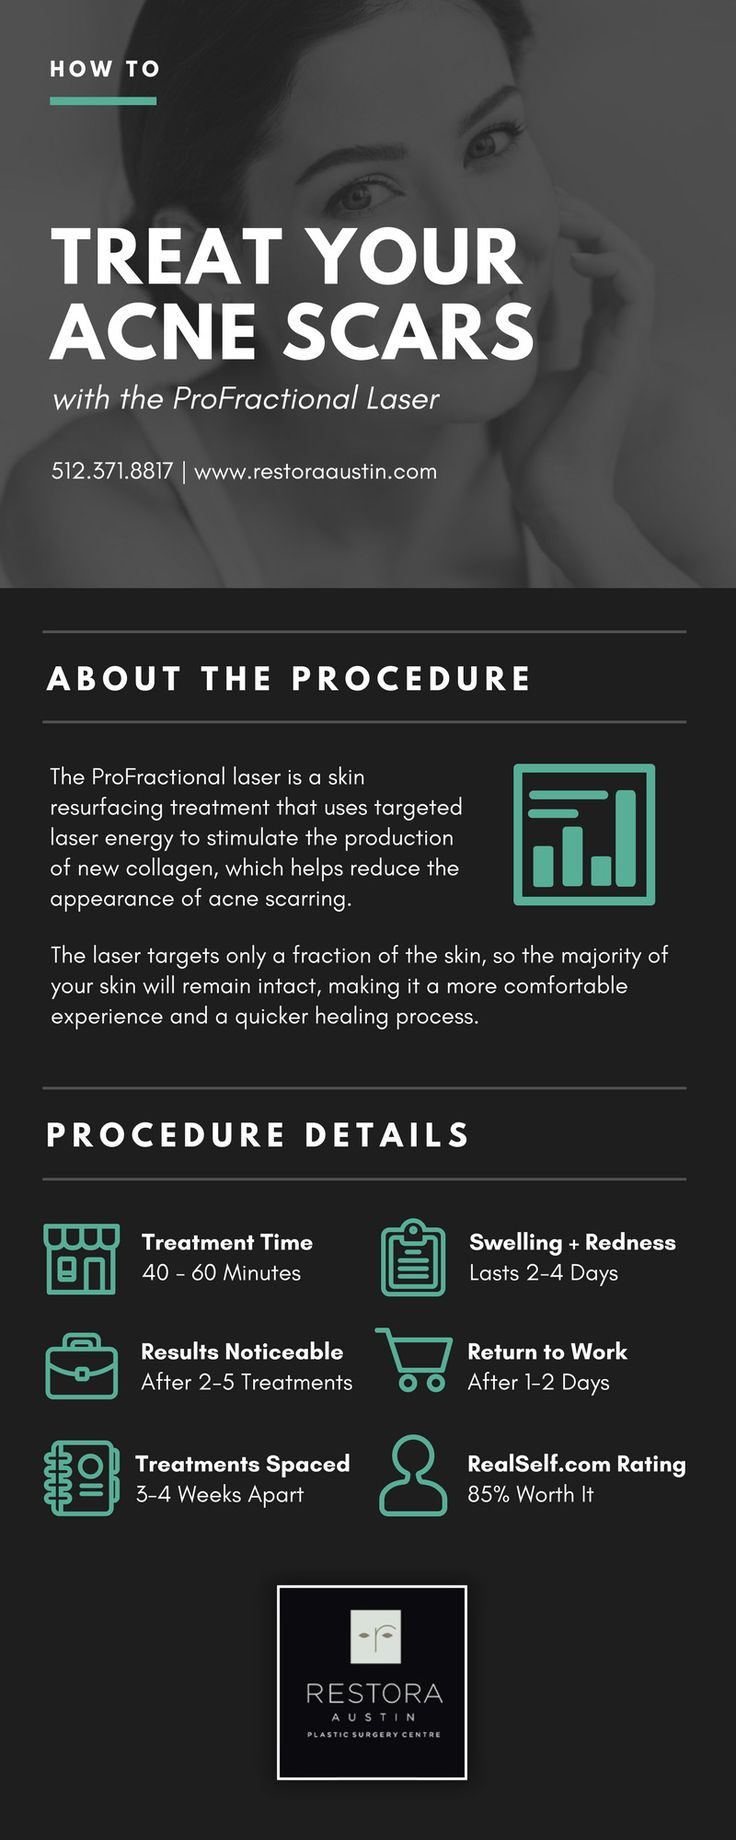 Treat Acne Scars with the ProFractional Laser